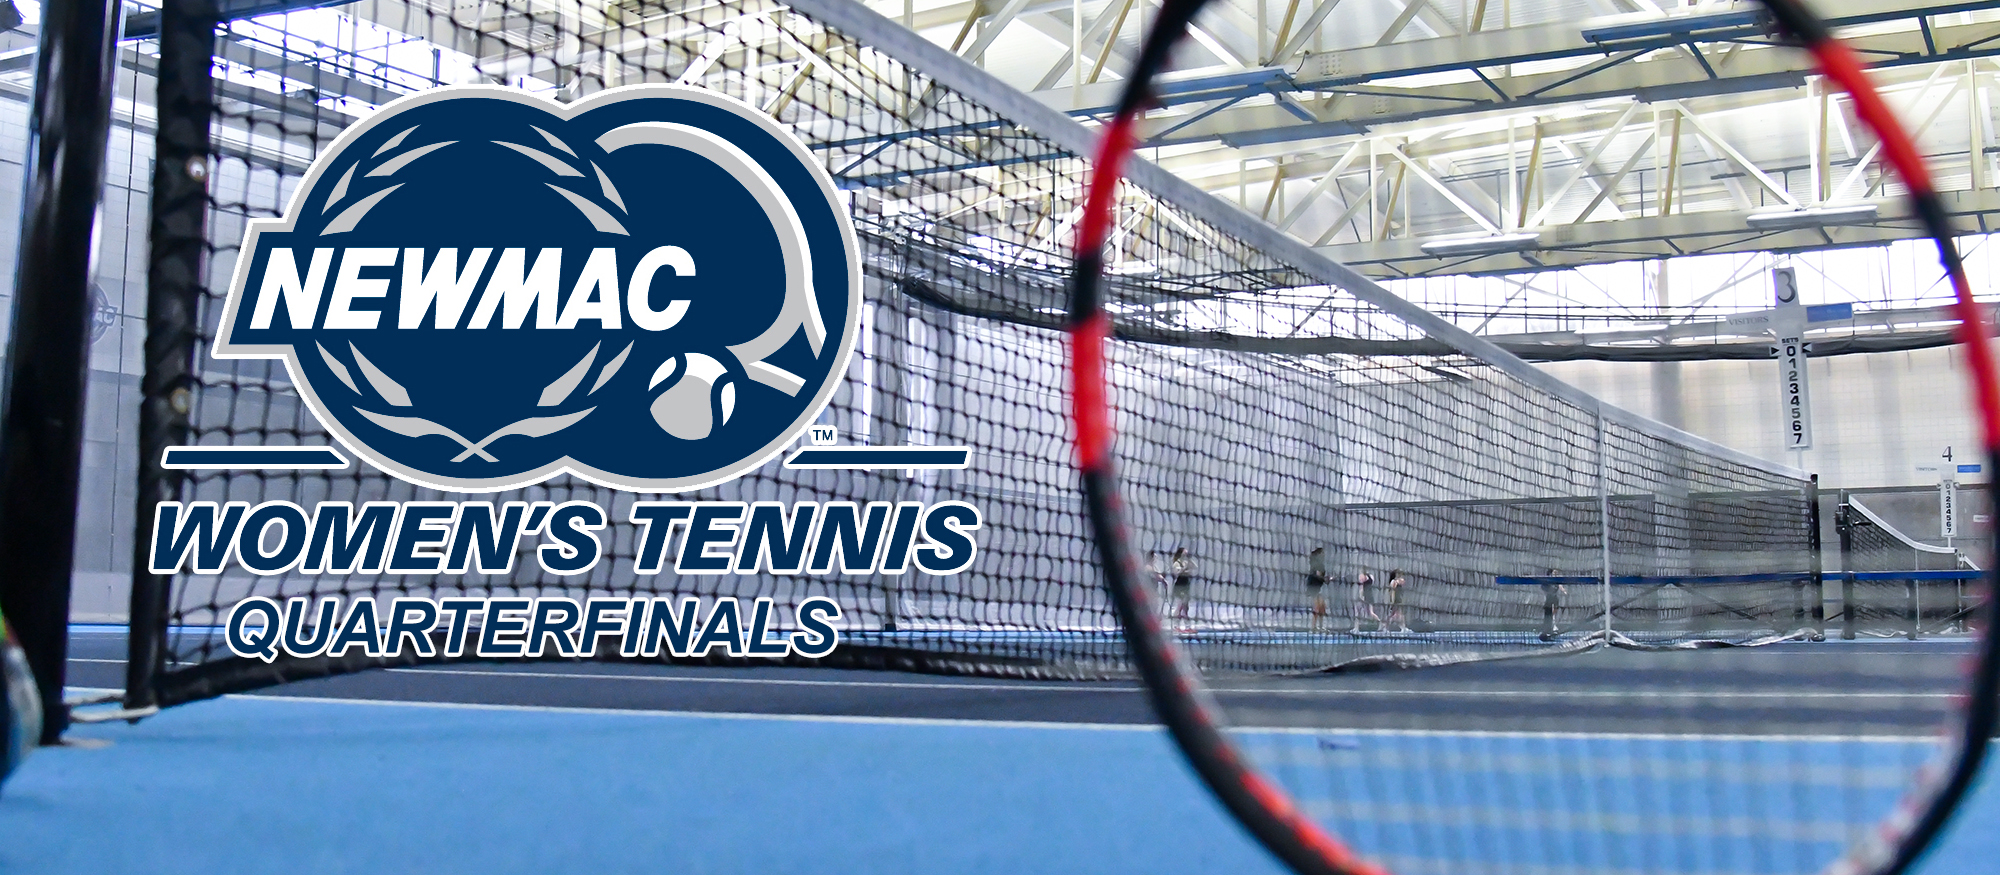 Image of a tennis net, court and racquet to promote the 2019 NEWMAC Tennis Quarterfinal match.